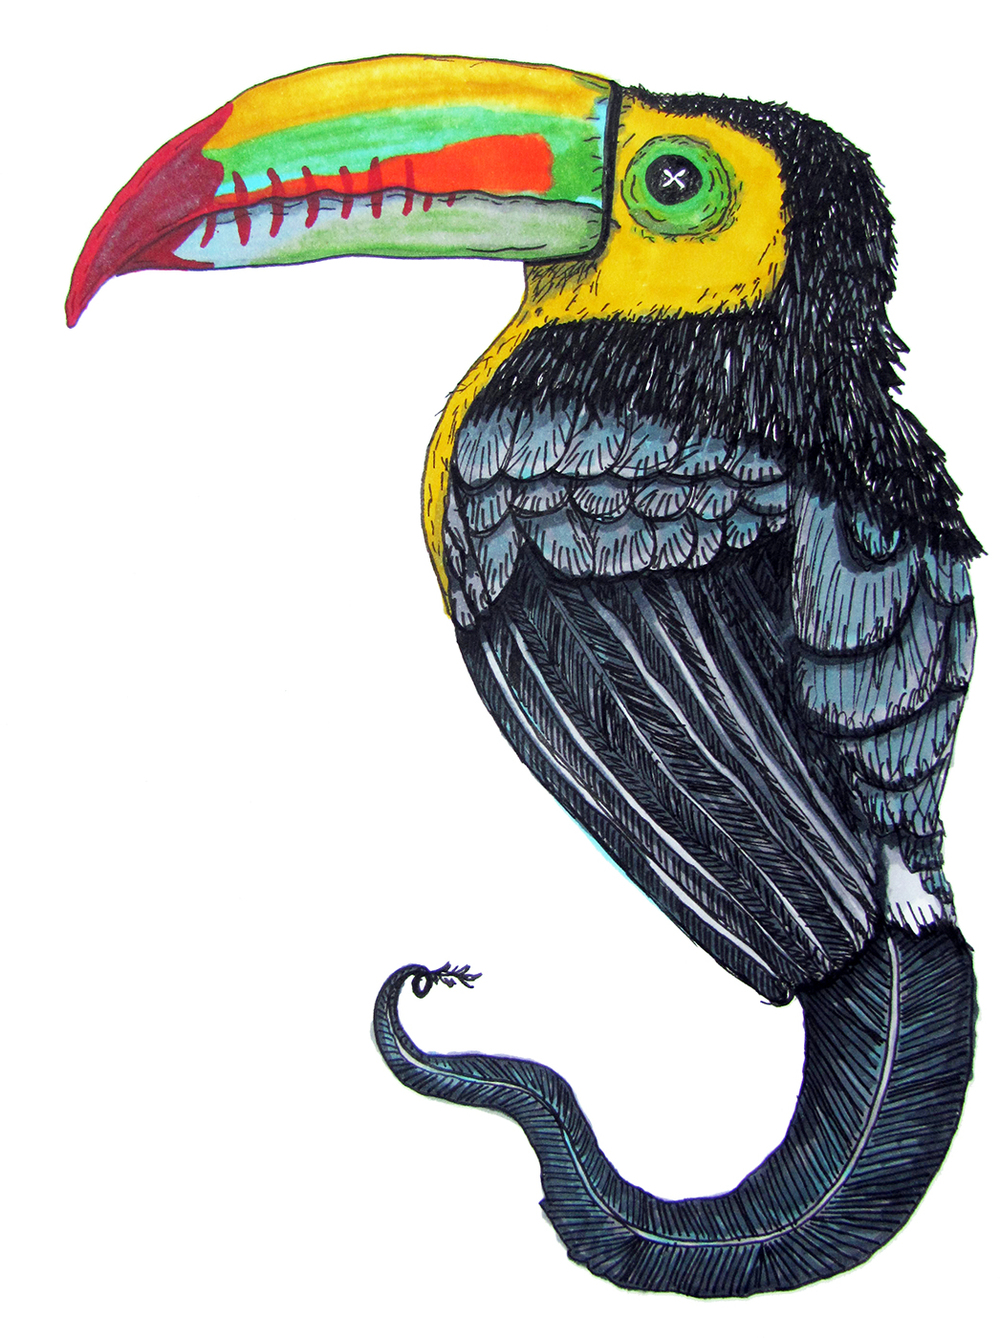 Toucan Ghost / marker and pen / 2016